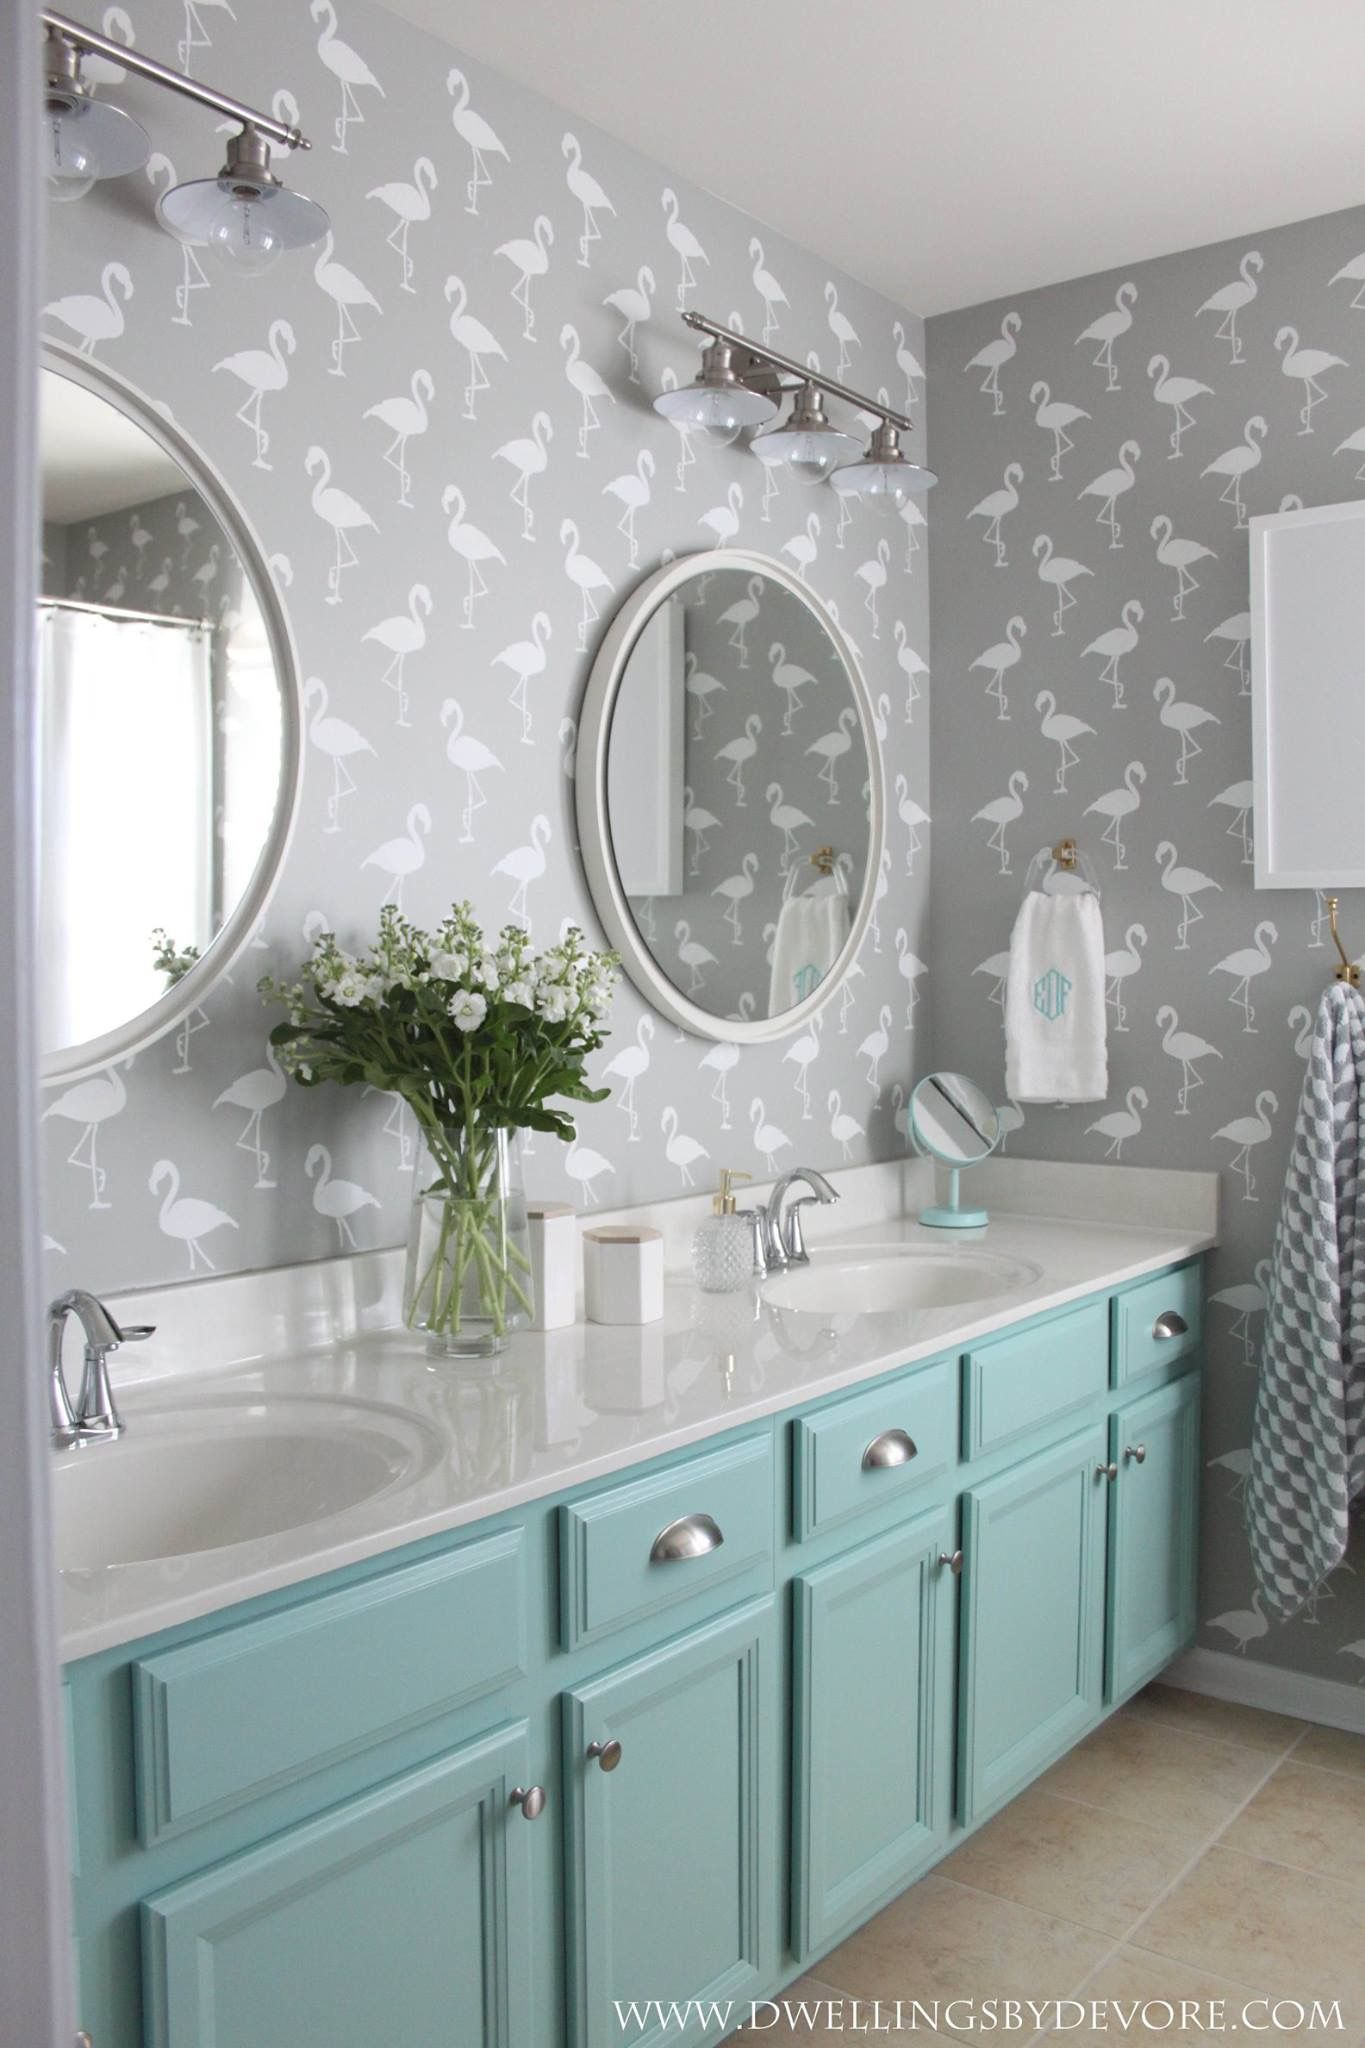 Turquoise Bathroom Cabinets With Gray And White Wallpaper